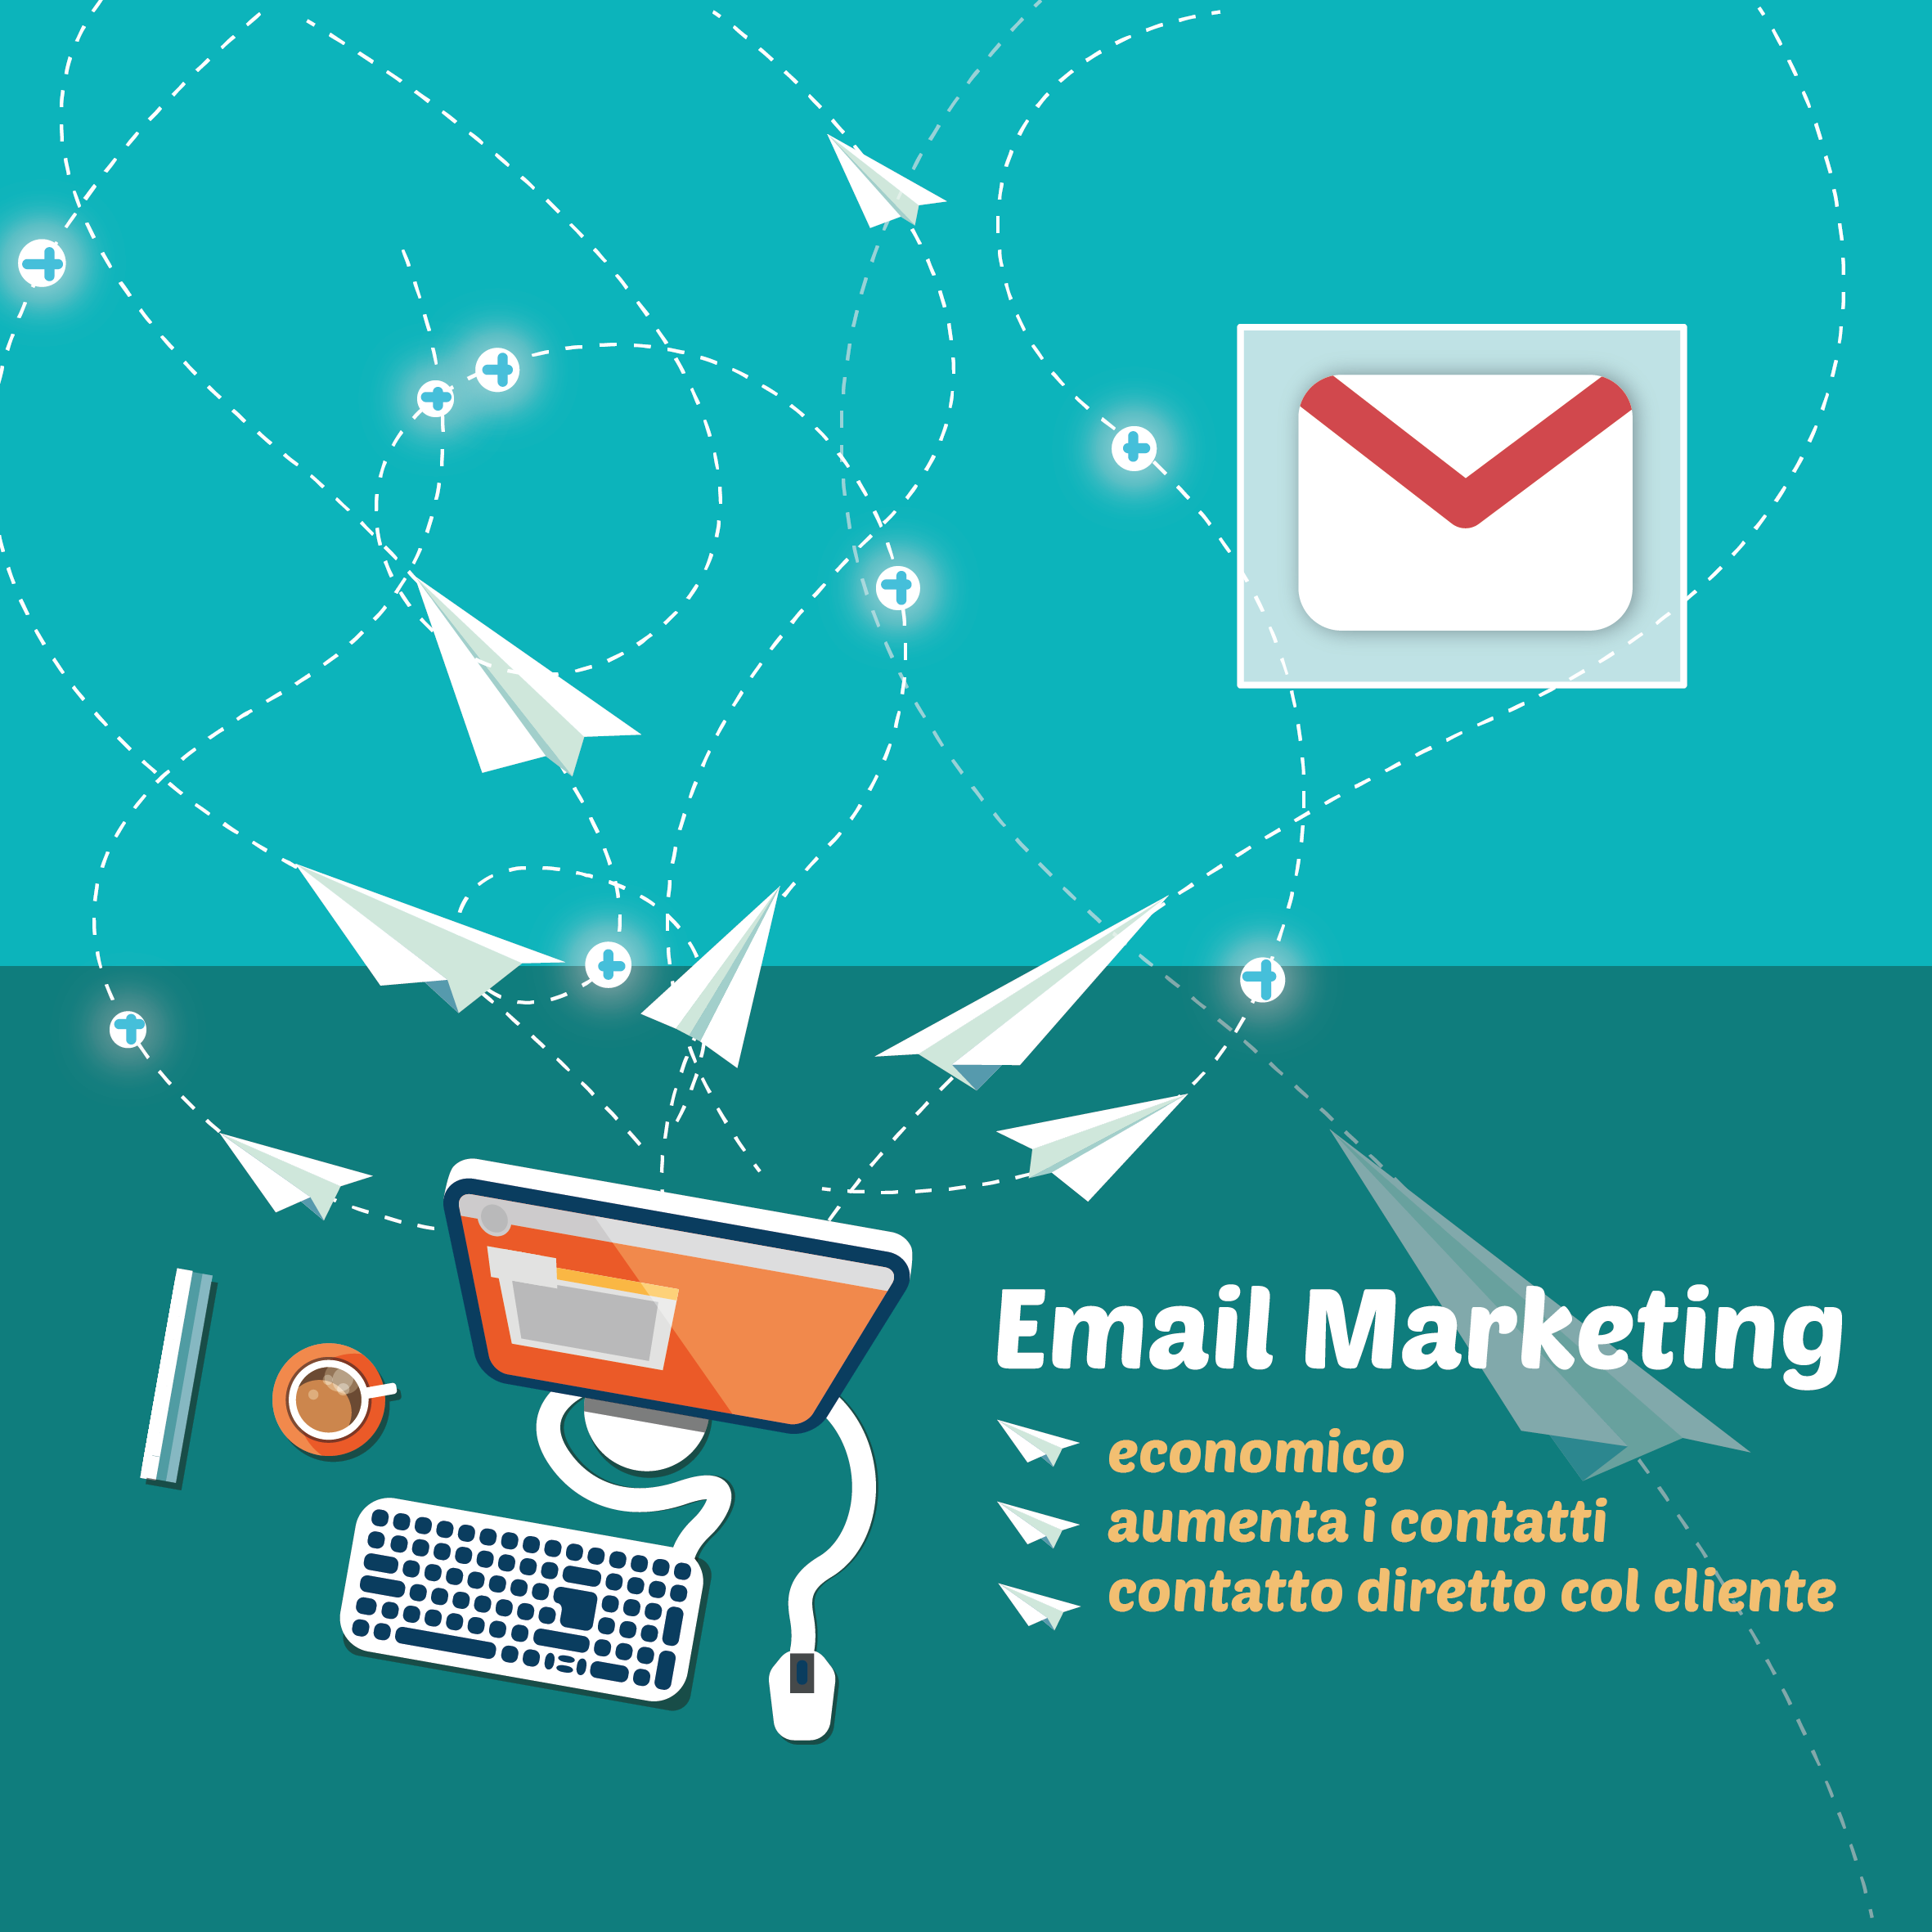 Email Marketing per raggiungere clienti - Metaweb Valtellina